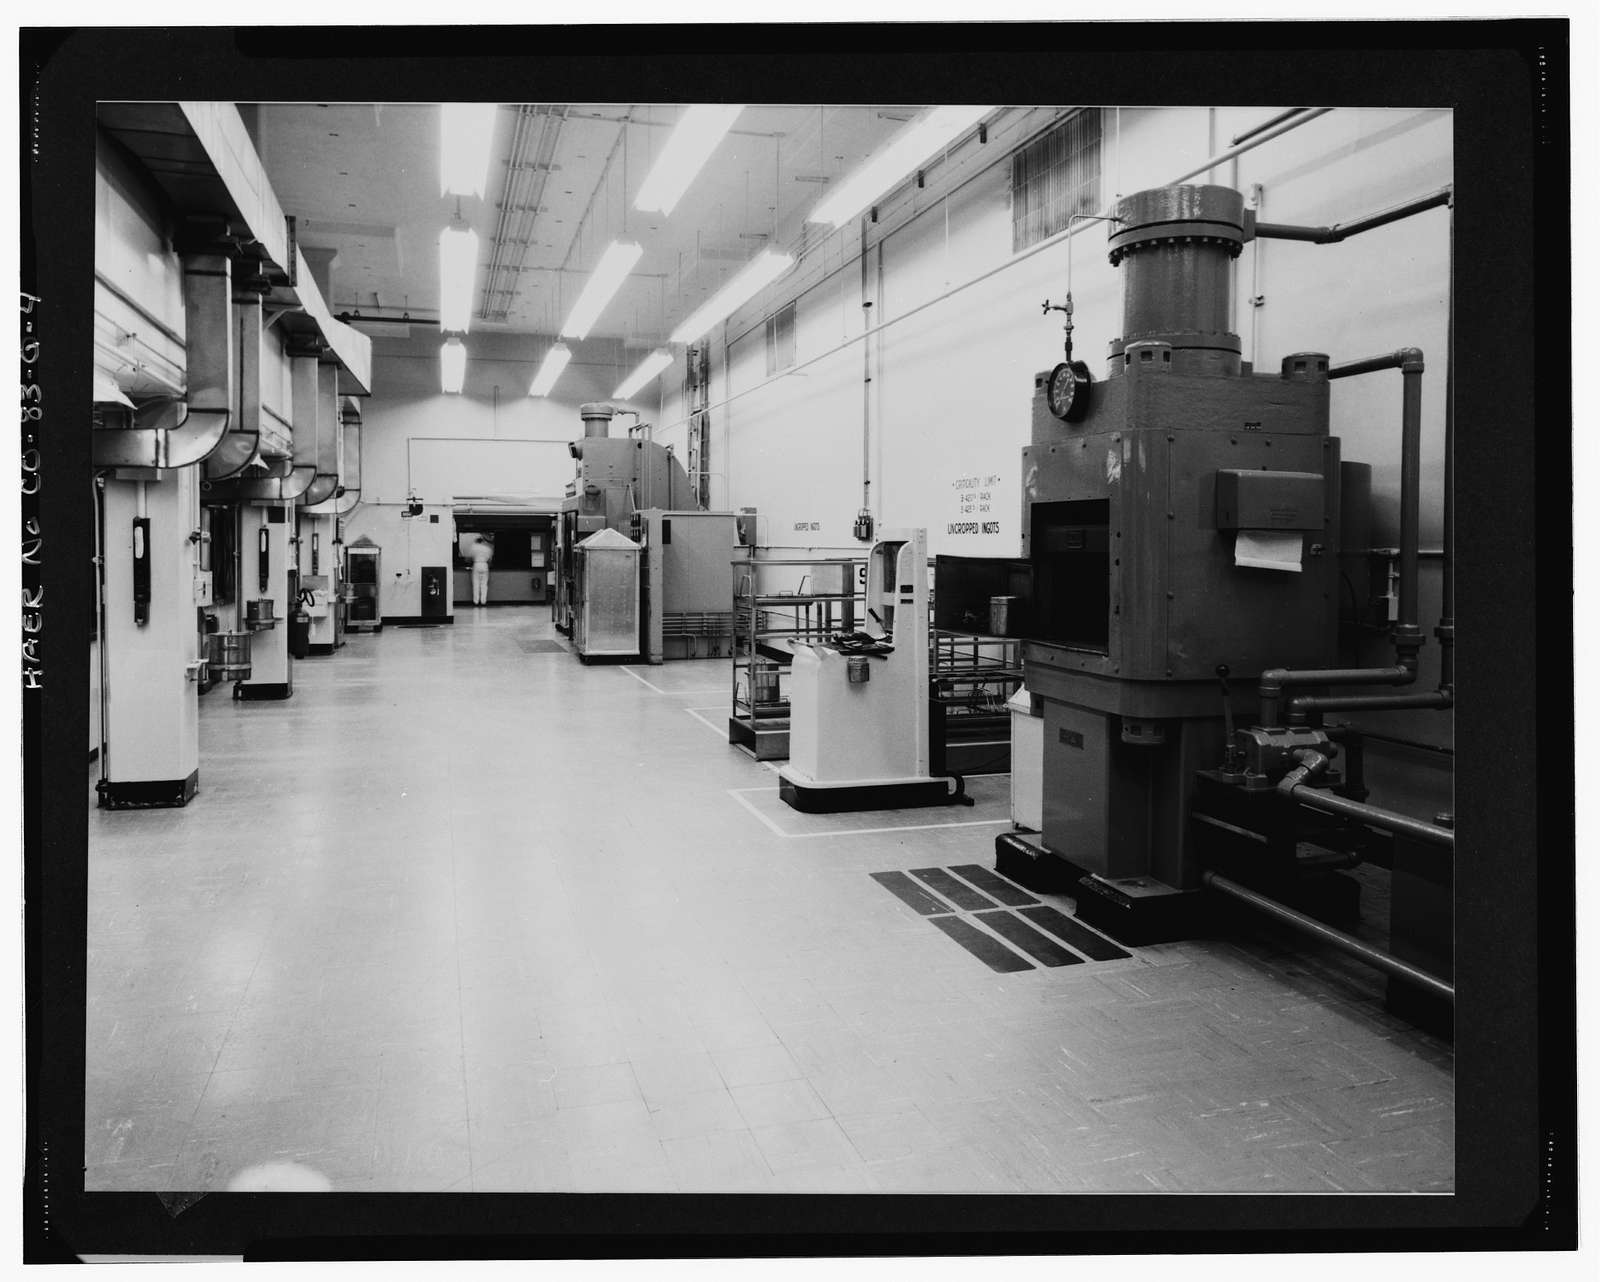 Rocky Flats Plant, General Manufacturing, Support, Records-Central Computing, Southern portion of Plant, Golden, Jefferson County, CO